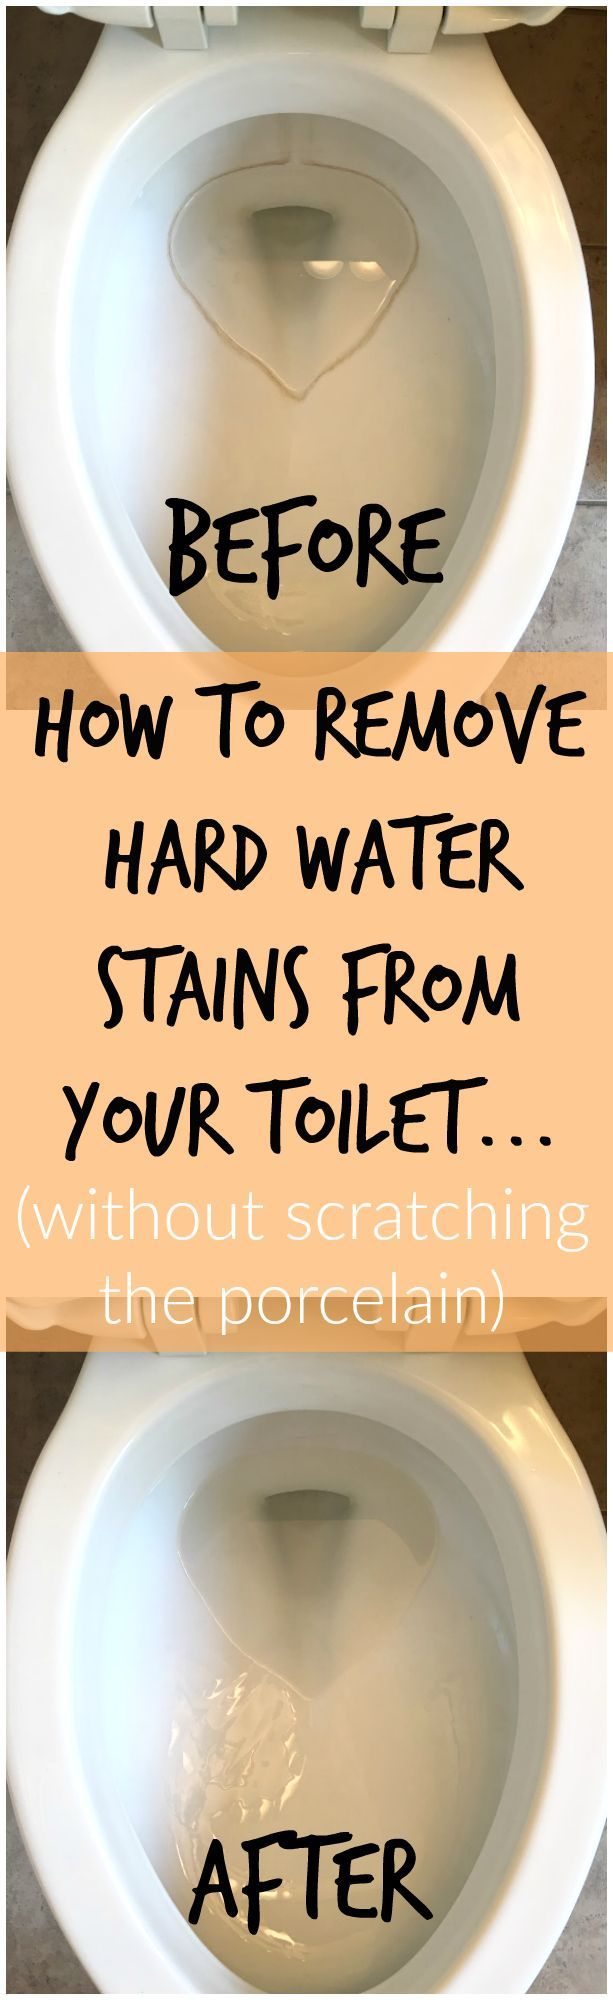 nov 16 how to remove hard water stains from toilets toilets stains and hard water stains. Black Bedroom Furniture Sets. Home Design Ideas